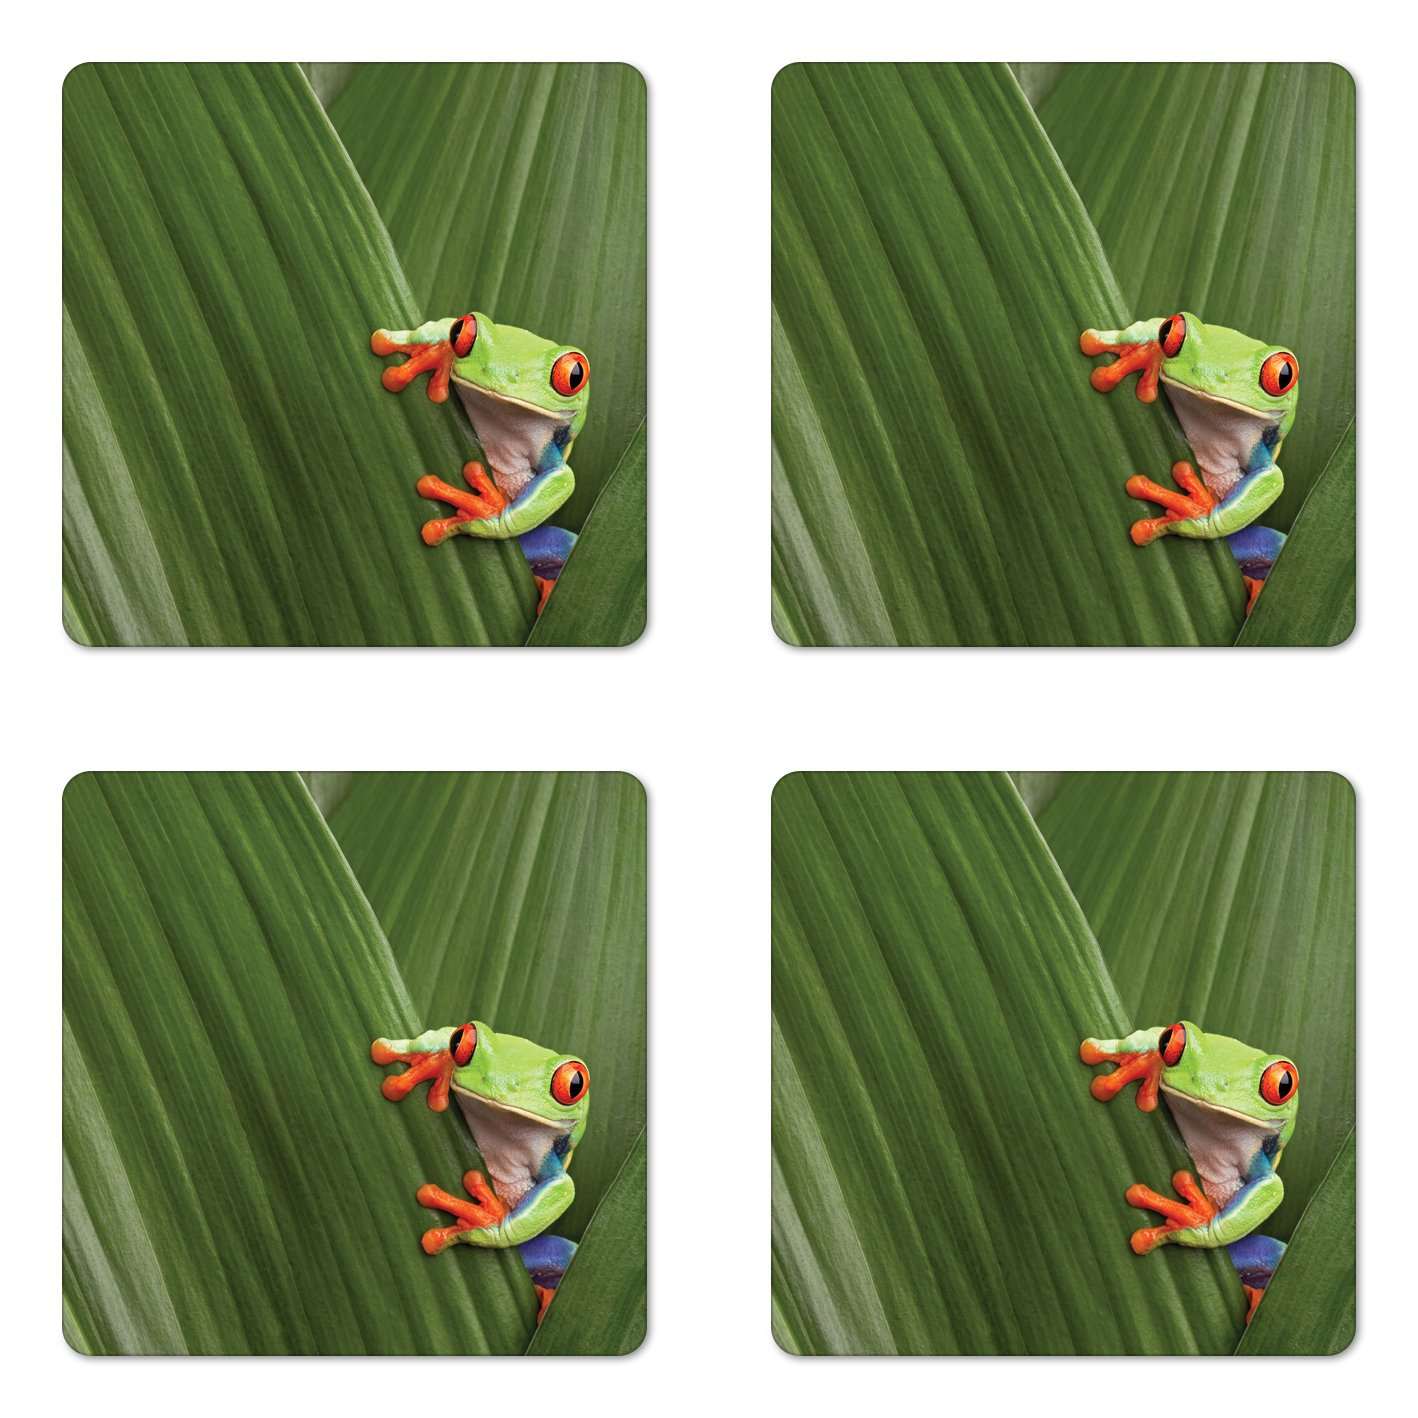 Lunarable Animal Coaster Set of Four, Red Eyed Tree Frog Hiding in Exotic Macro Leaf in Costa Rica Rainforest Tropical Nature, Square Hardboard Gloss Coasters for Drinks, Green